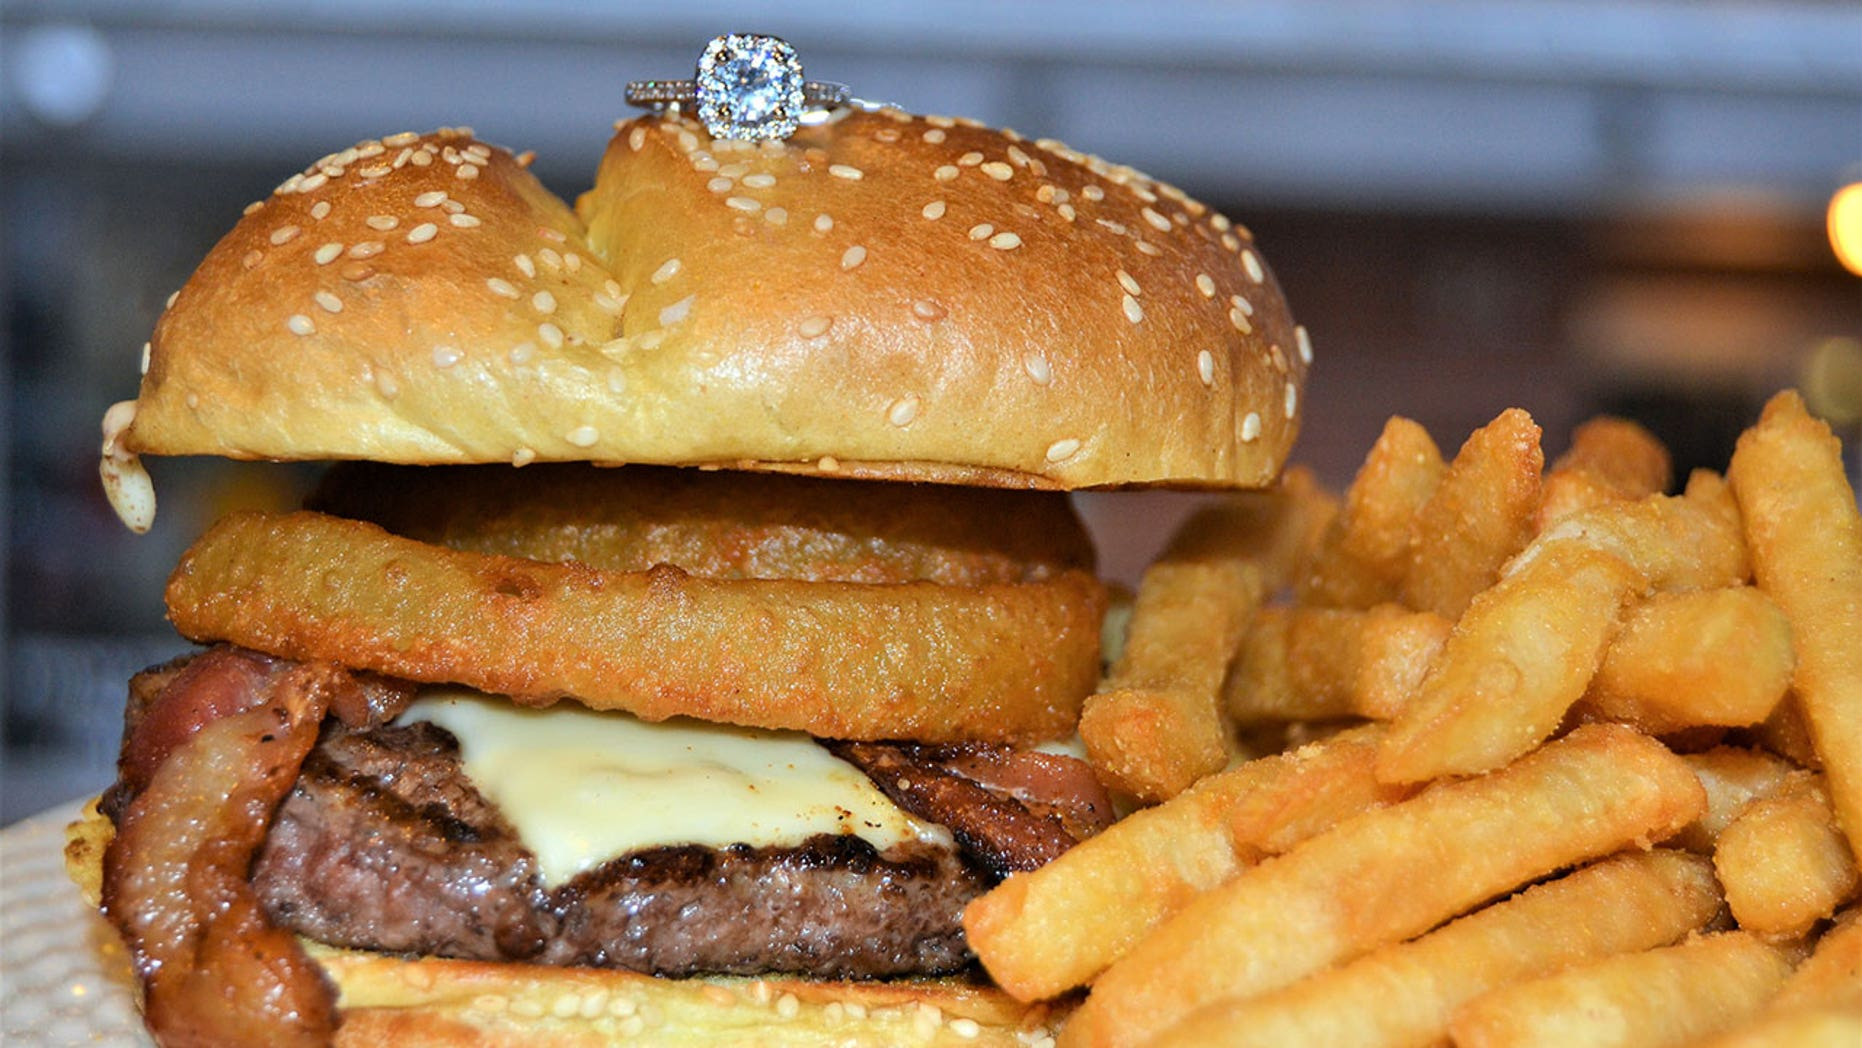 Pauli's in Boston's North End is offering a special deal for customers who want to propose over a burger.